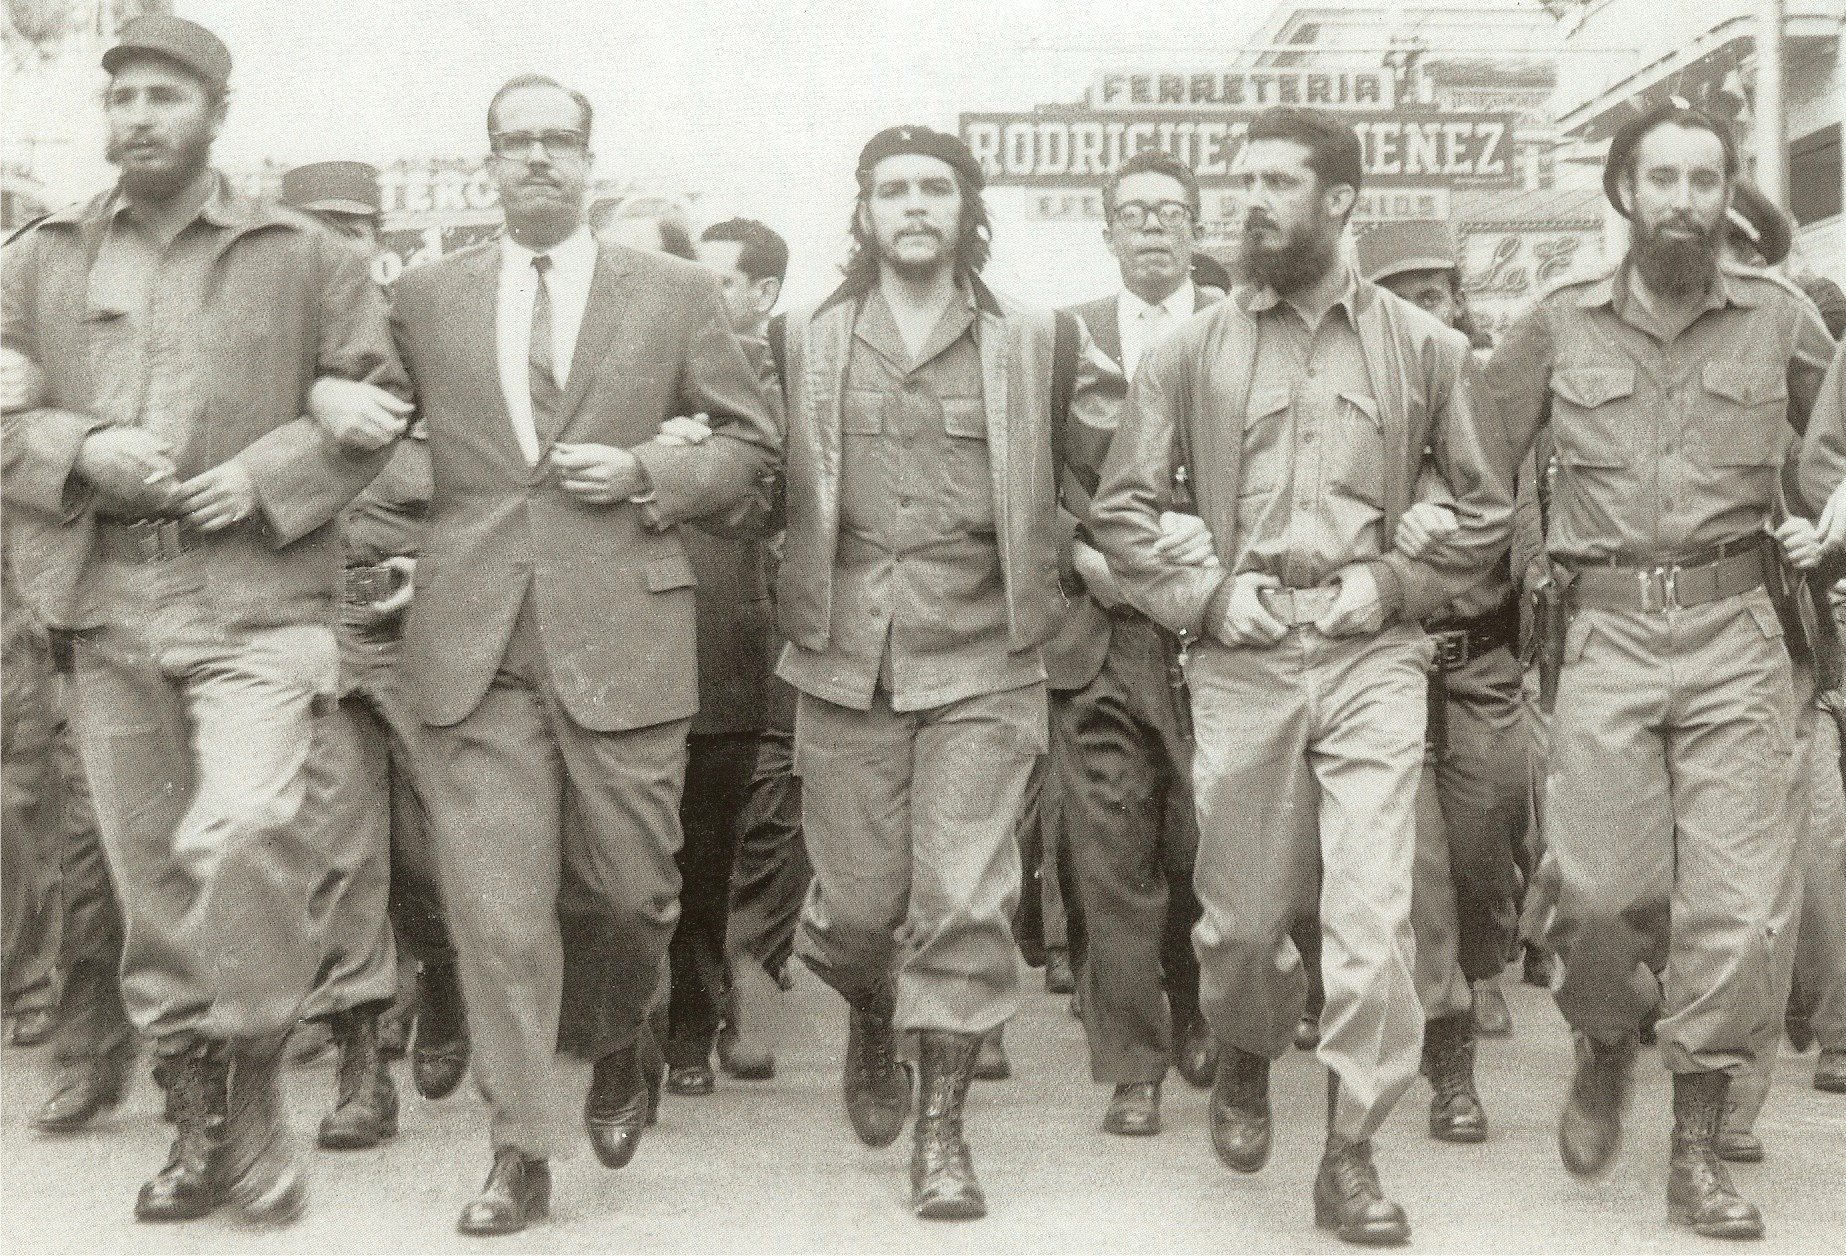 Fidel Castro, Osvaldo Dorticos (president of Cuba), Ernesto Che Guevara march in Havana on March 5, 1960, the day after the explosion of French freighter La Coubre that brought 76 tons of Belgian munitions. (Author: Unknown)